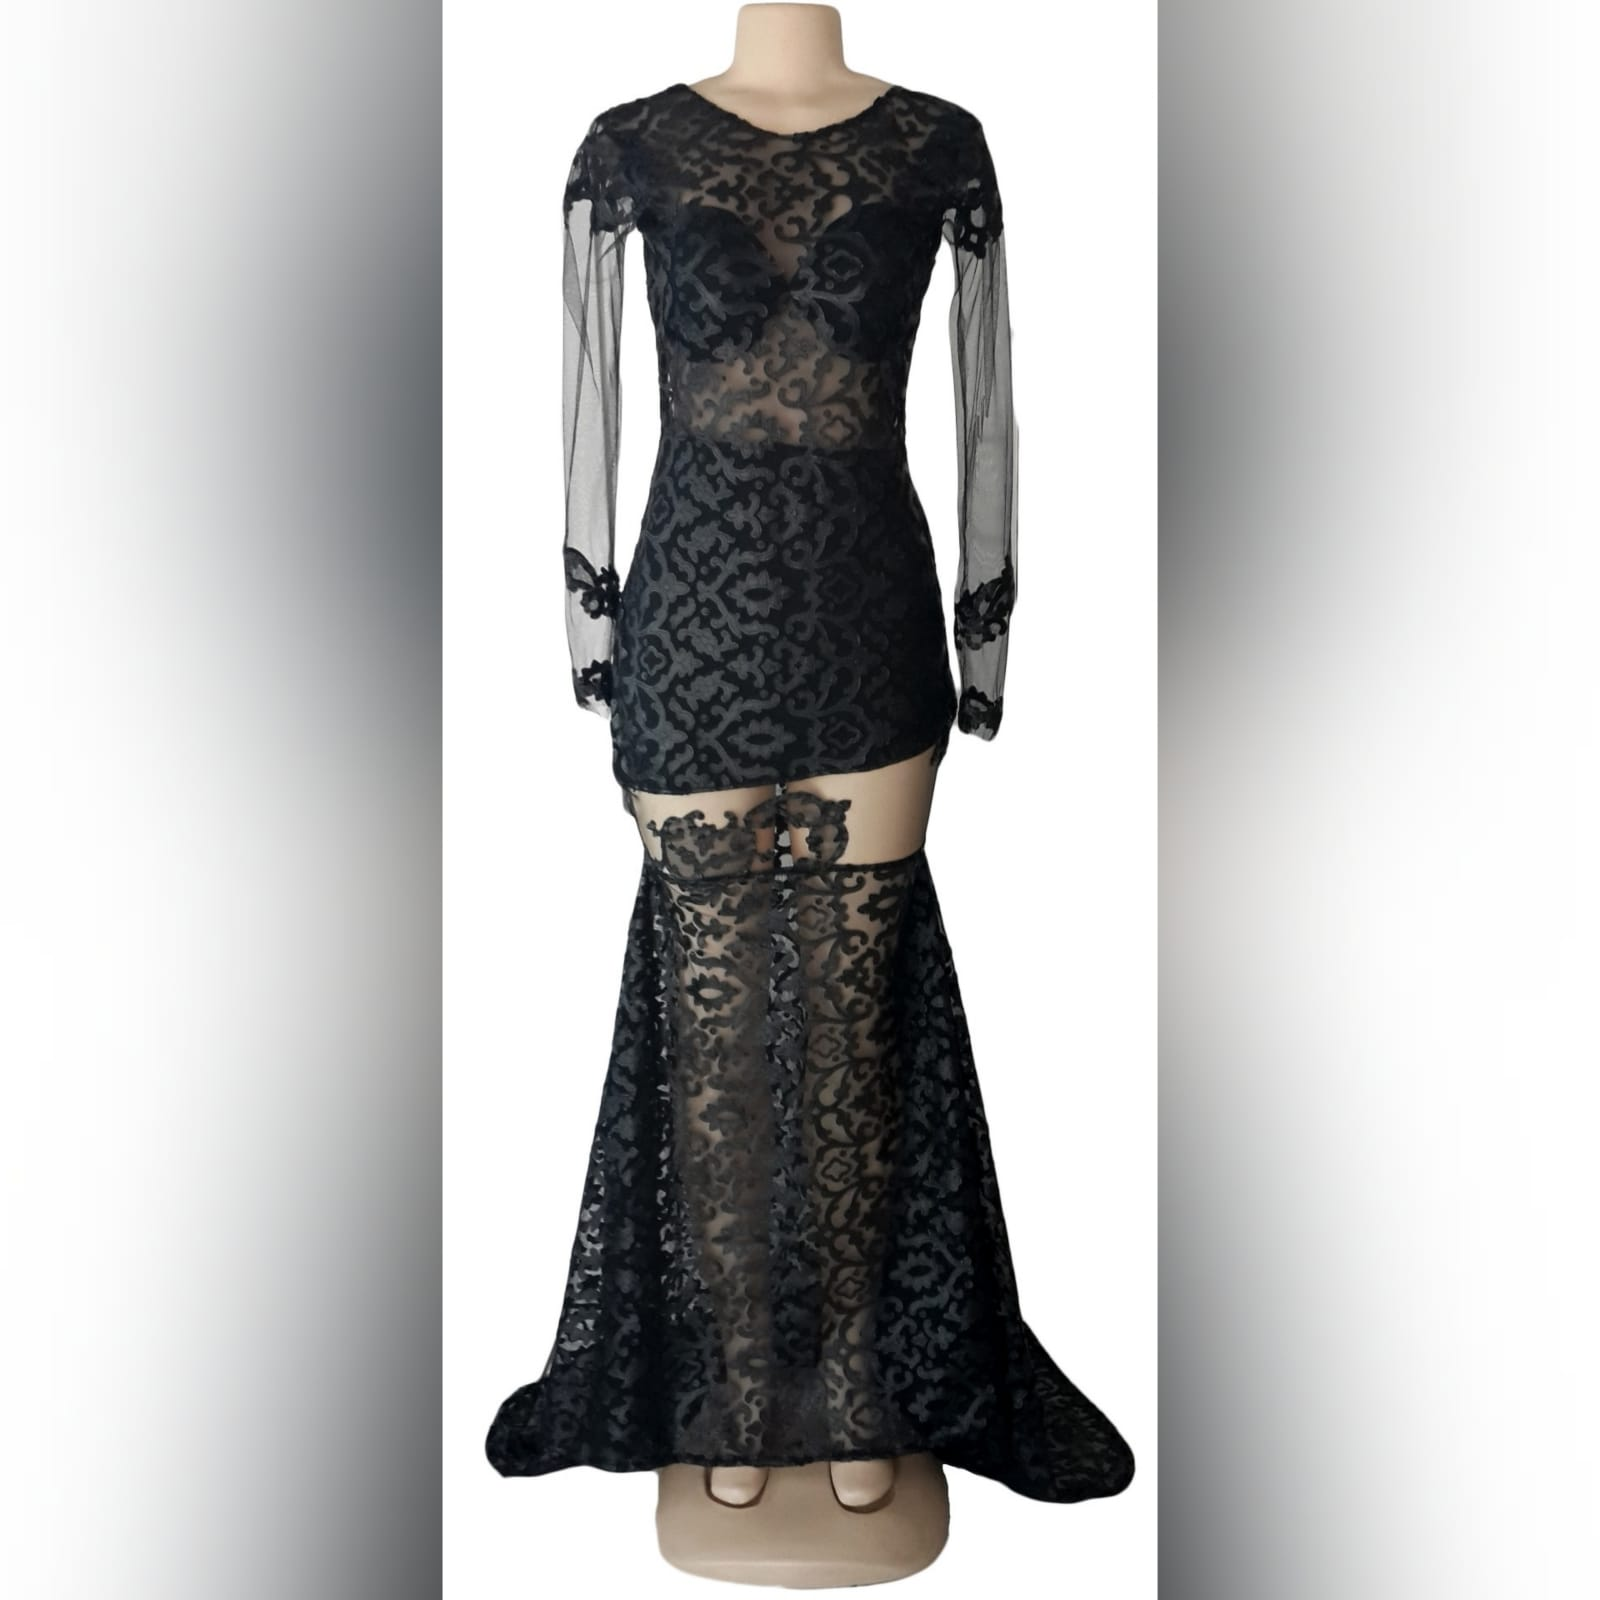 21st birthday party black dress 3 black long suede lace evening dress for 21st birthday party, with sheer black long sleeves and sheer thigh area, with a train and an open back